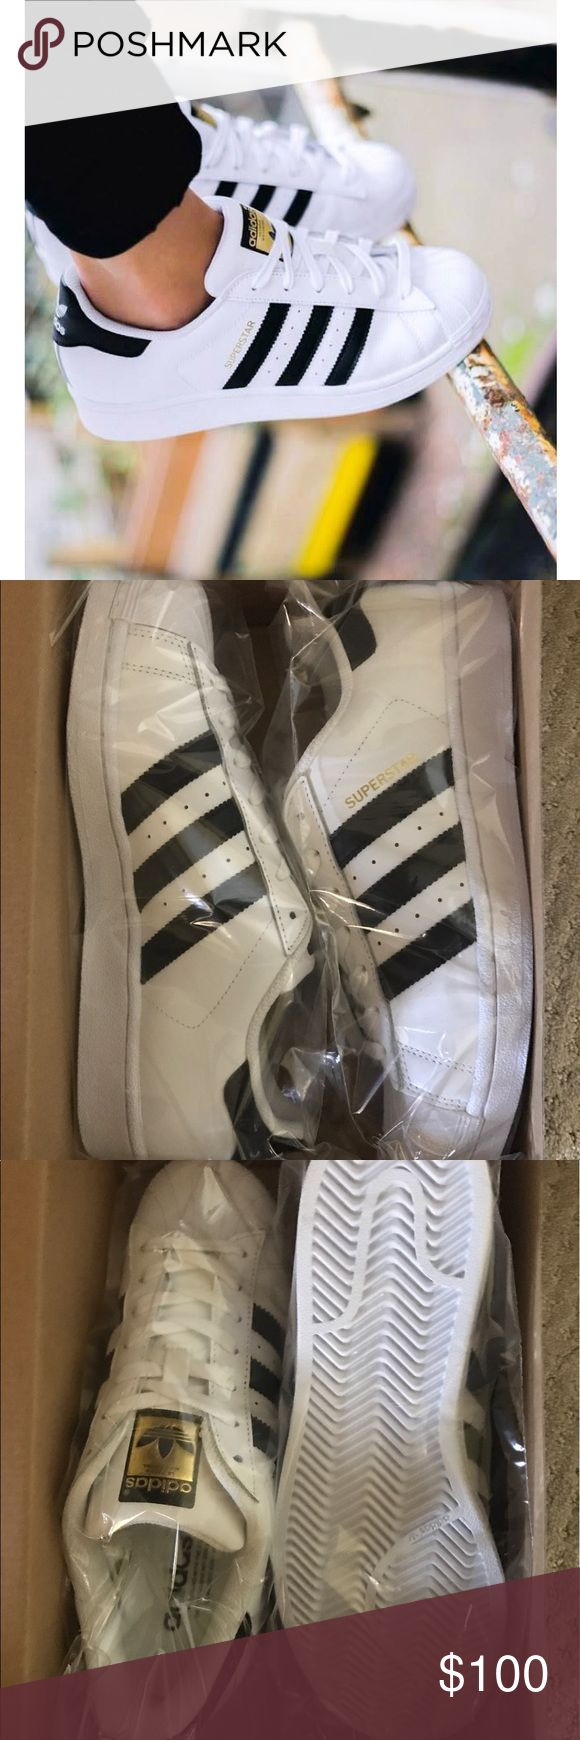 Adidas superstar sneakers Brand new in packaging, women's size 8, most recommend to go a half or full size up so this would fit those who are an 8.5 or 9 the best adidas Shoes Sneakers